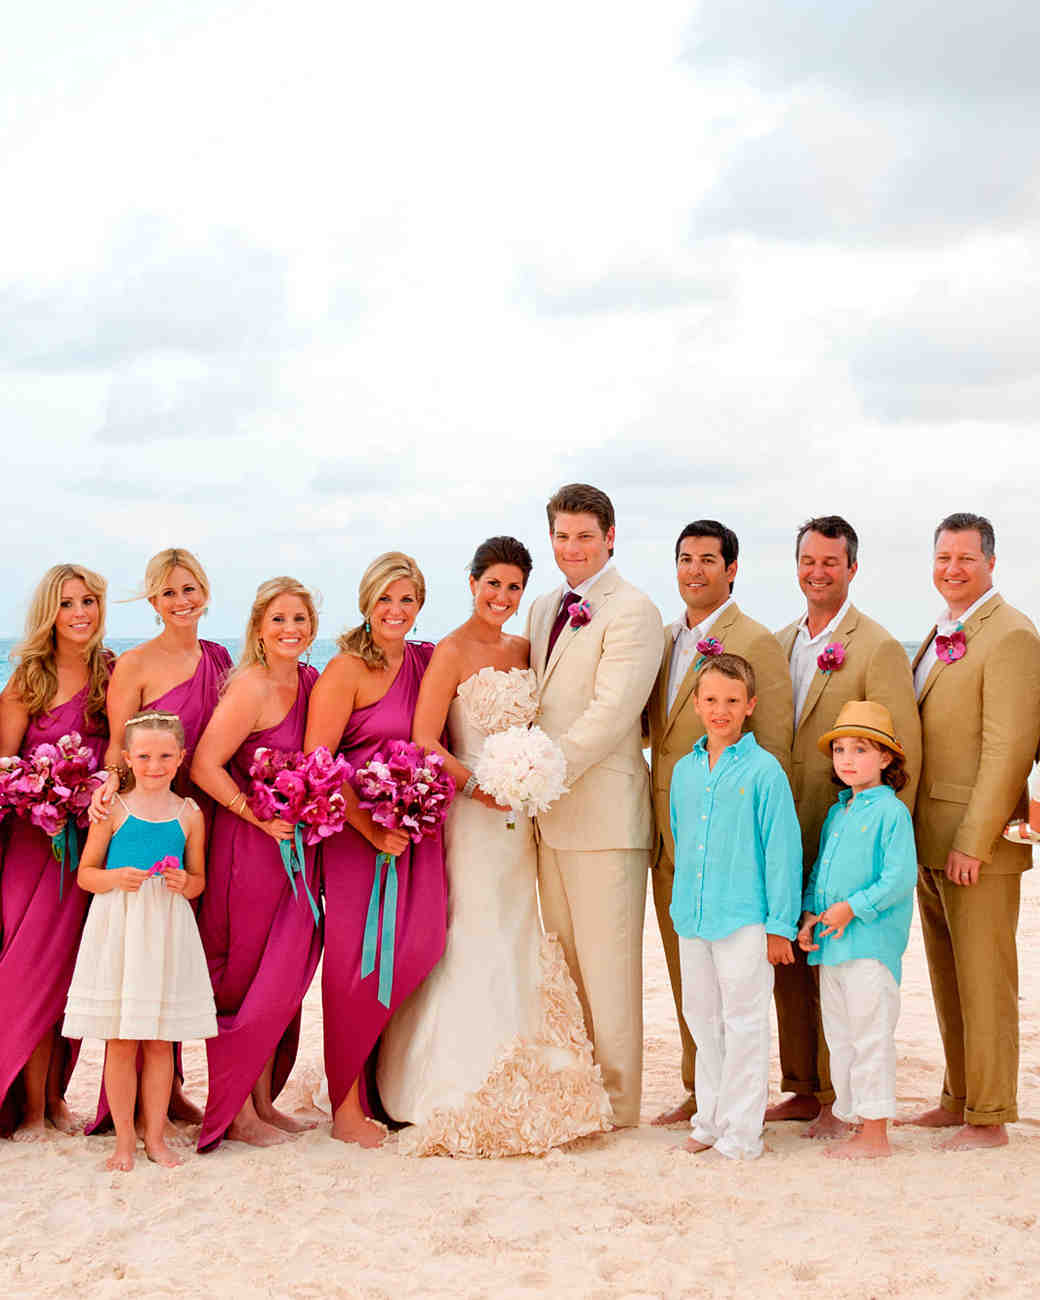 How to Choose Your Wedding Party